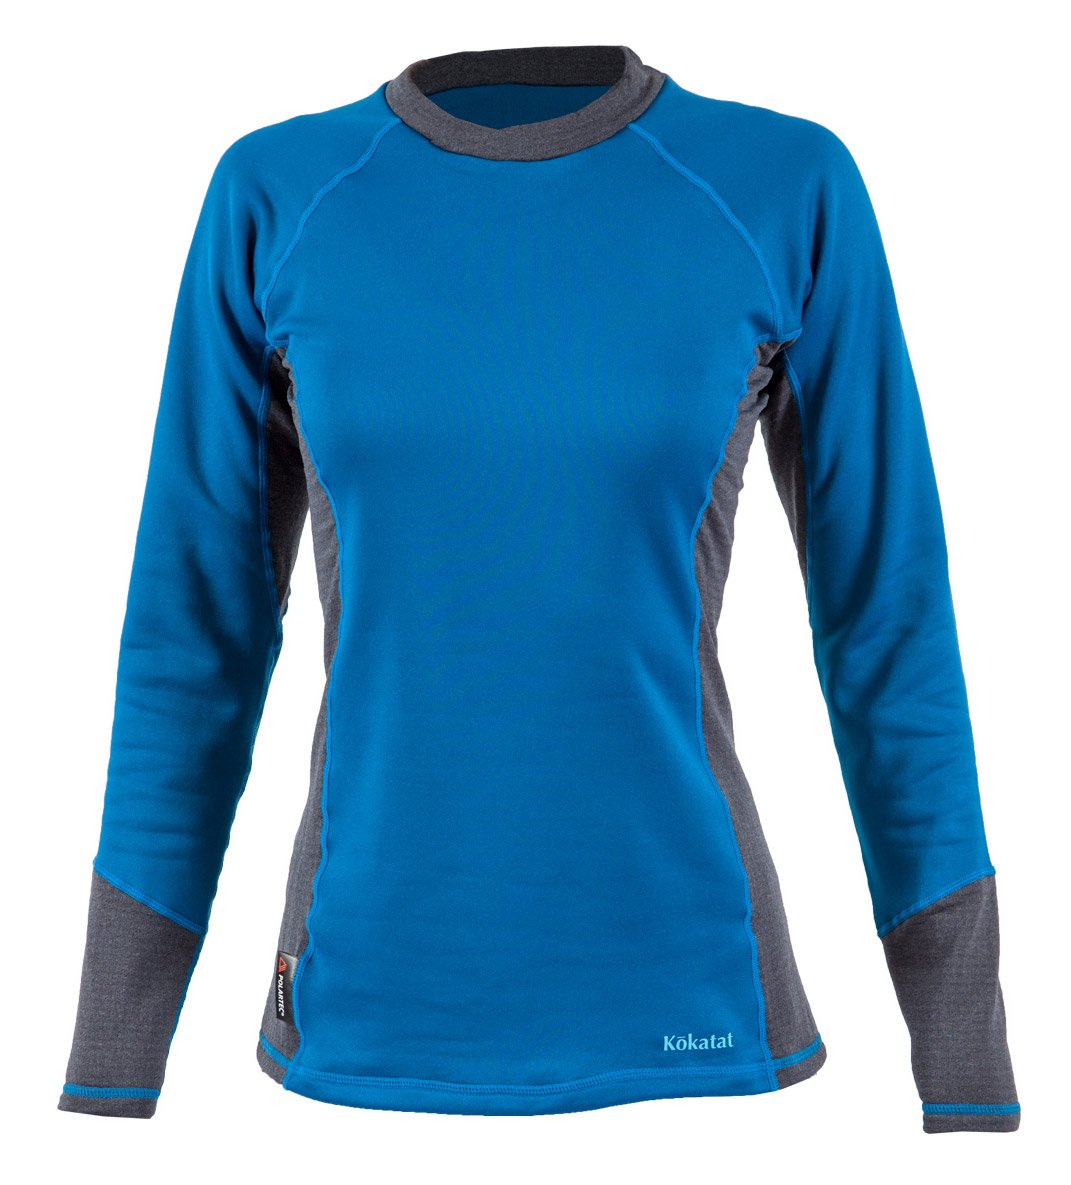 Kokatat Women's Polartec Power Dry Outercore Long Sleeve Shirt-Ocean-L by Kokatat